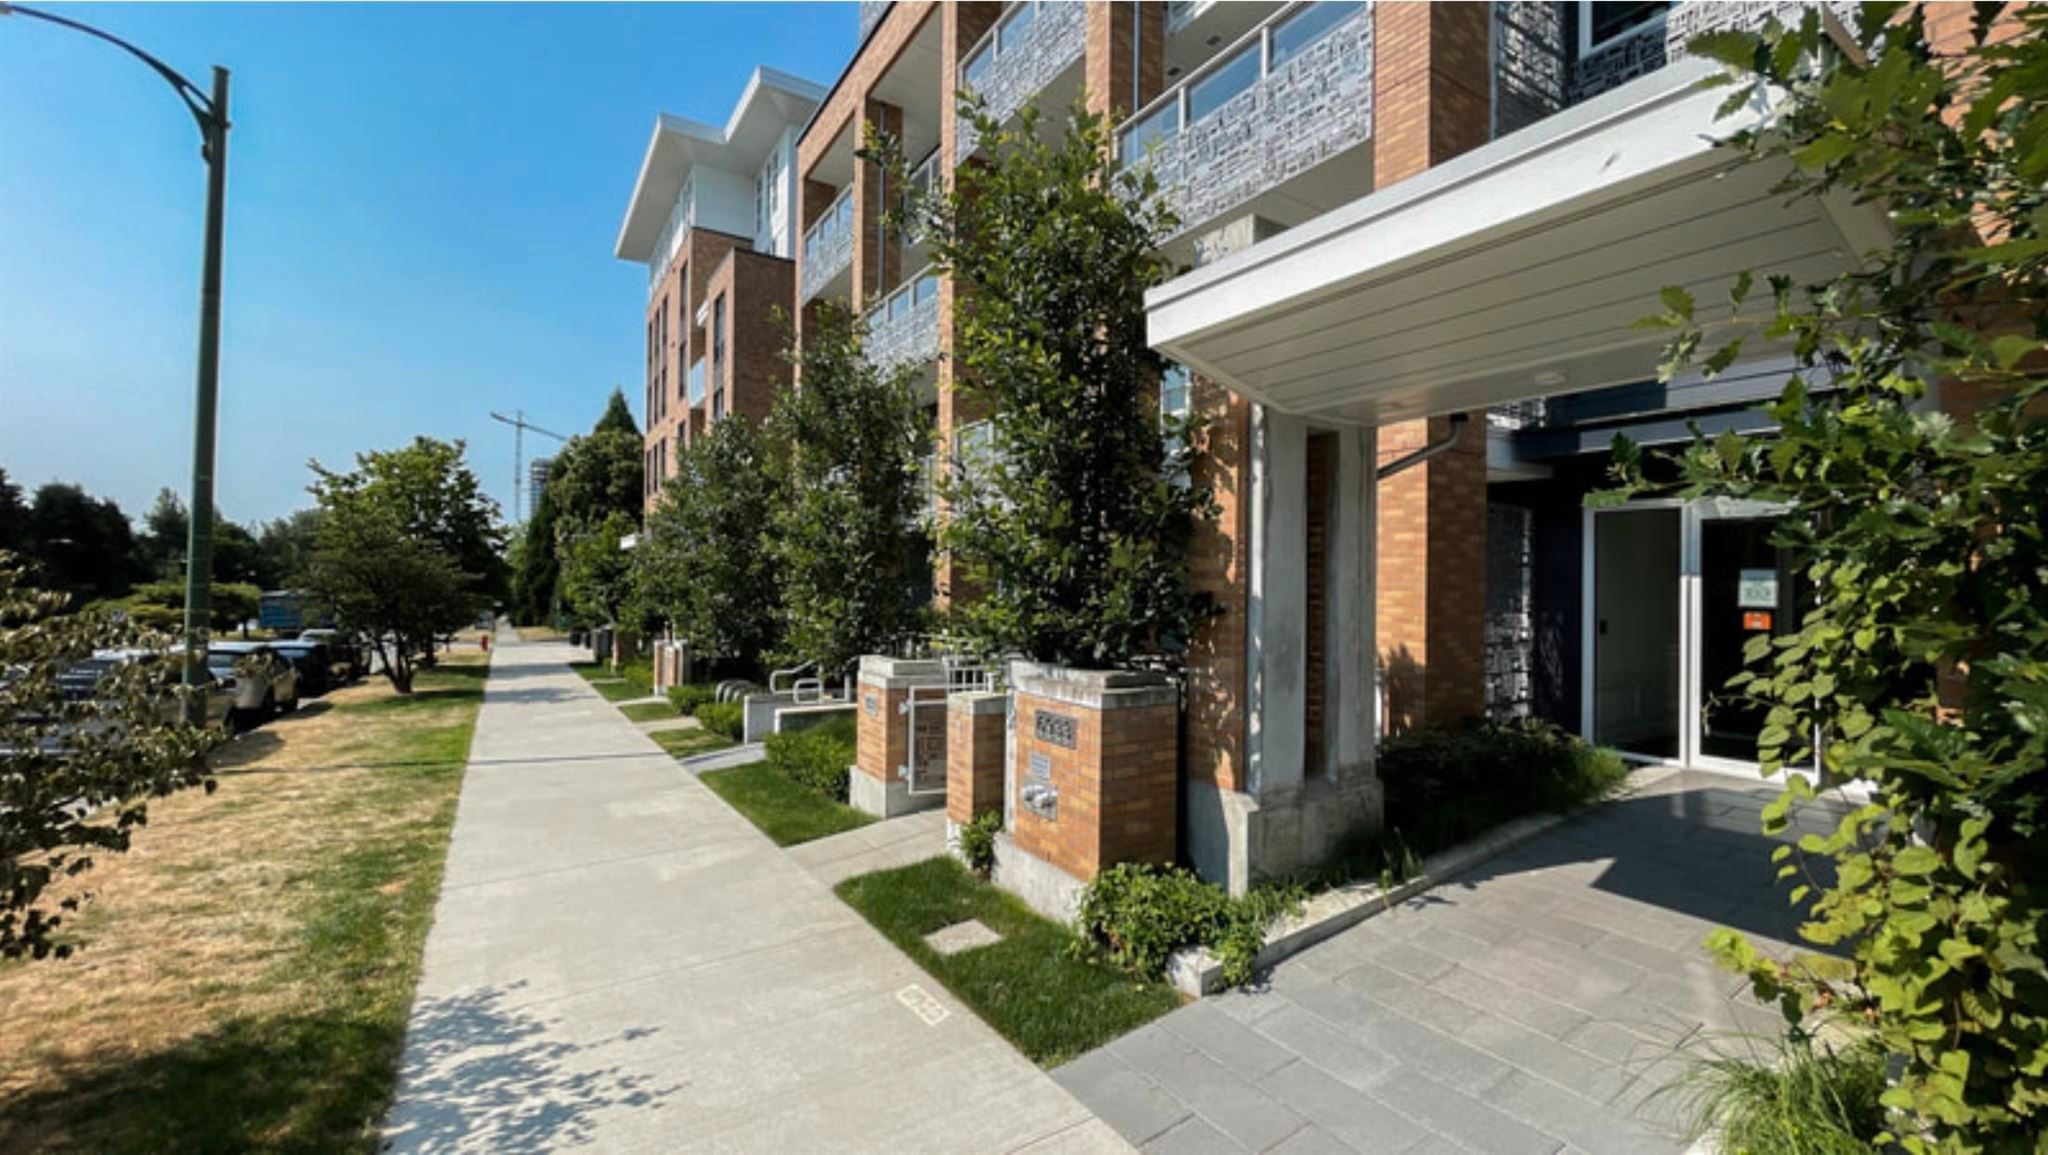 """Main Photo: 205 6933 CAMBIE Street in Vancouver: South Cambie Condo for sale in """"CAMBRIA PARK"""" (Vancouver West)  : MLS®# R2611384"""